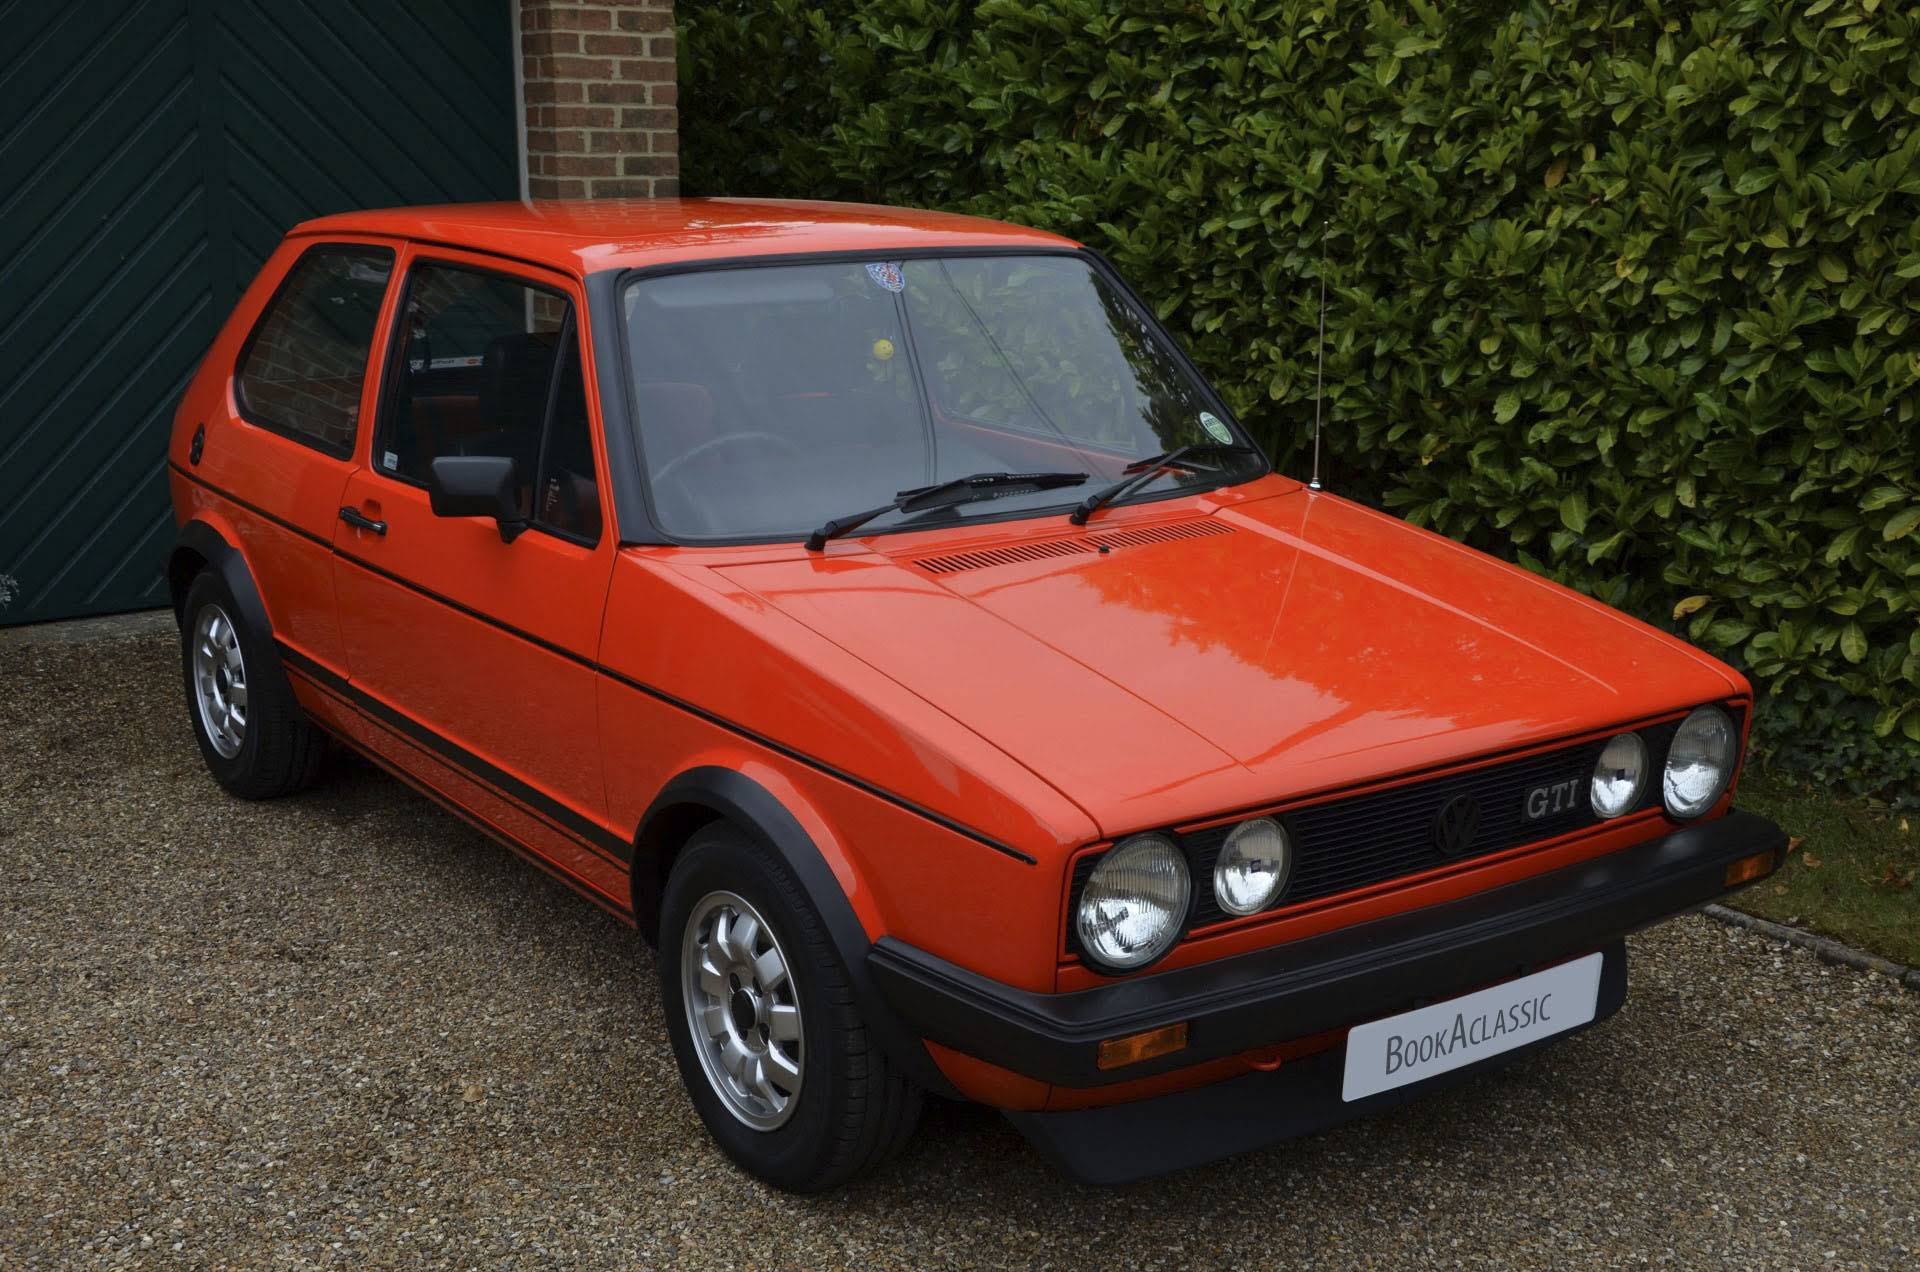 Volkswagen Golf Gti For Hire In Romsey Bookaclassic